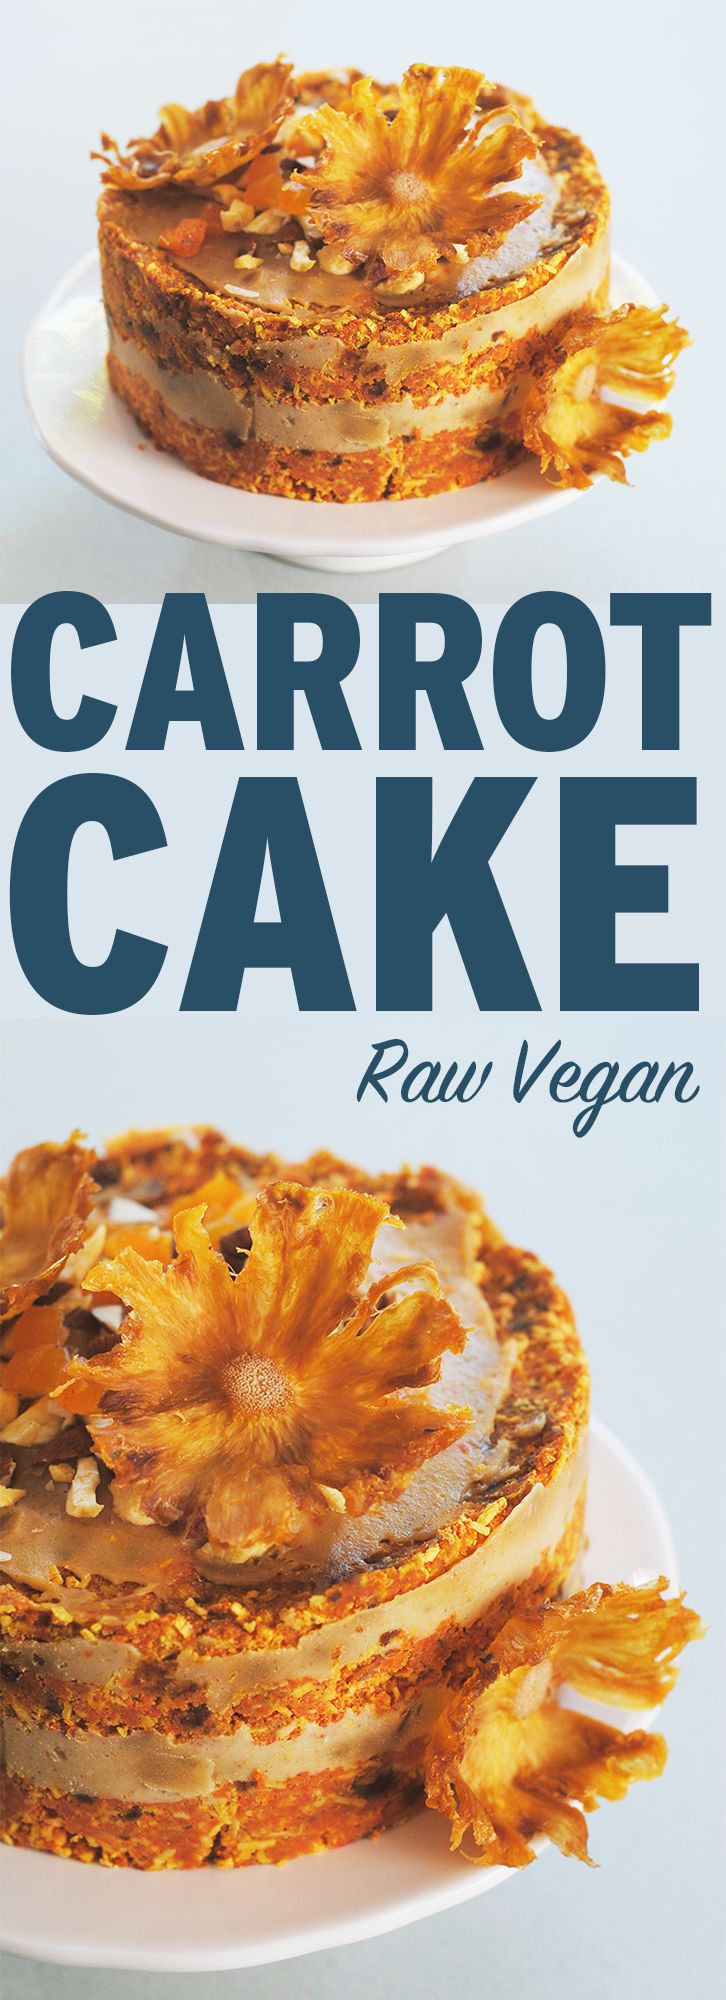 This carrot cake is raw and vegan. The texture will amaze you! Top it with cashew cream frosting for a surprisingly decadent dessert.   http://theblenderist.com/raw-vegan-carrot-cake/